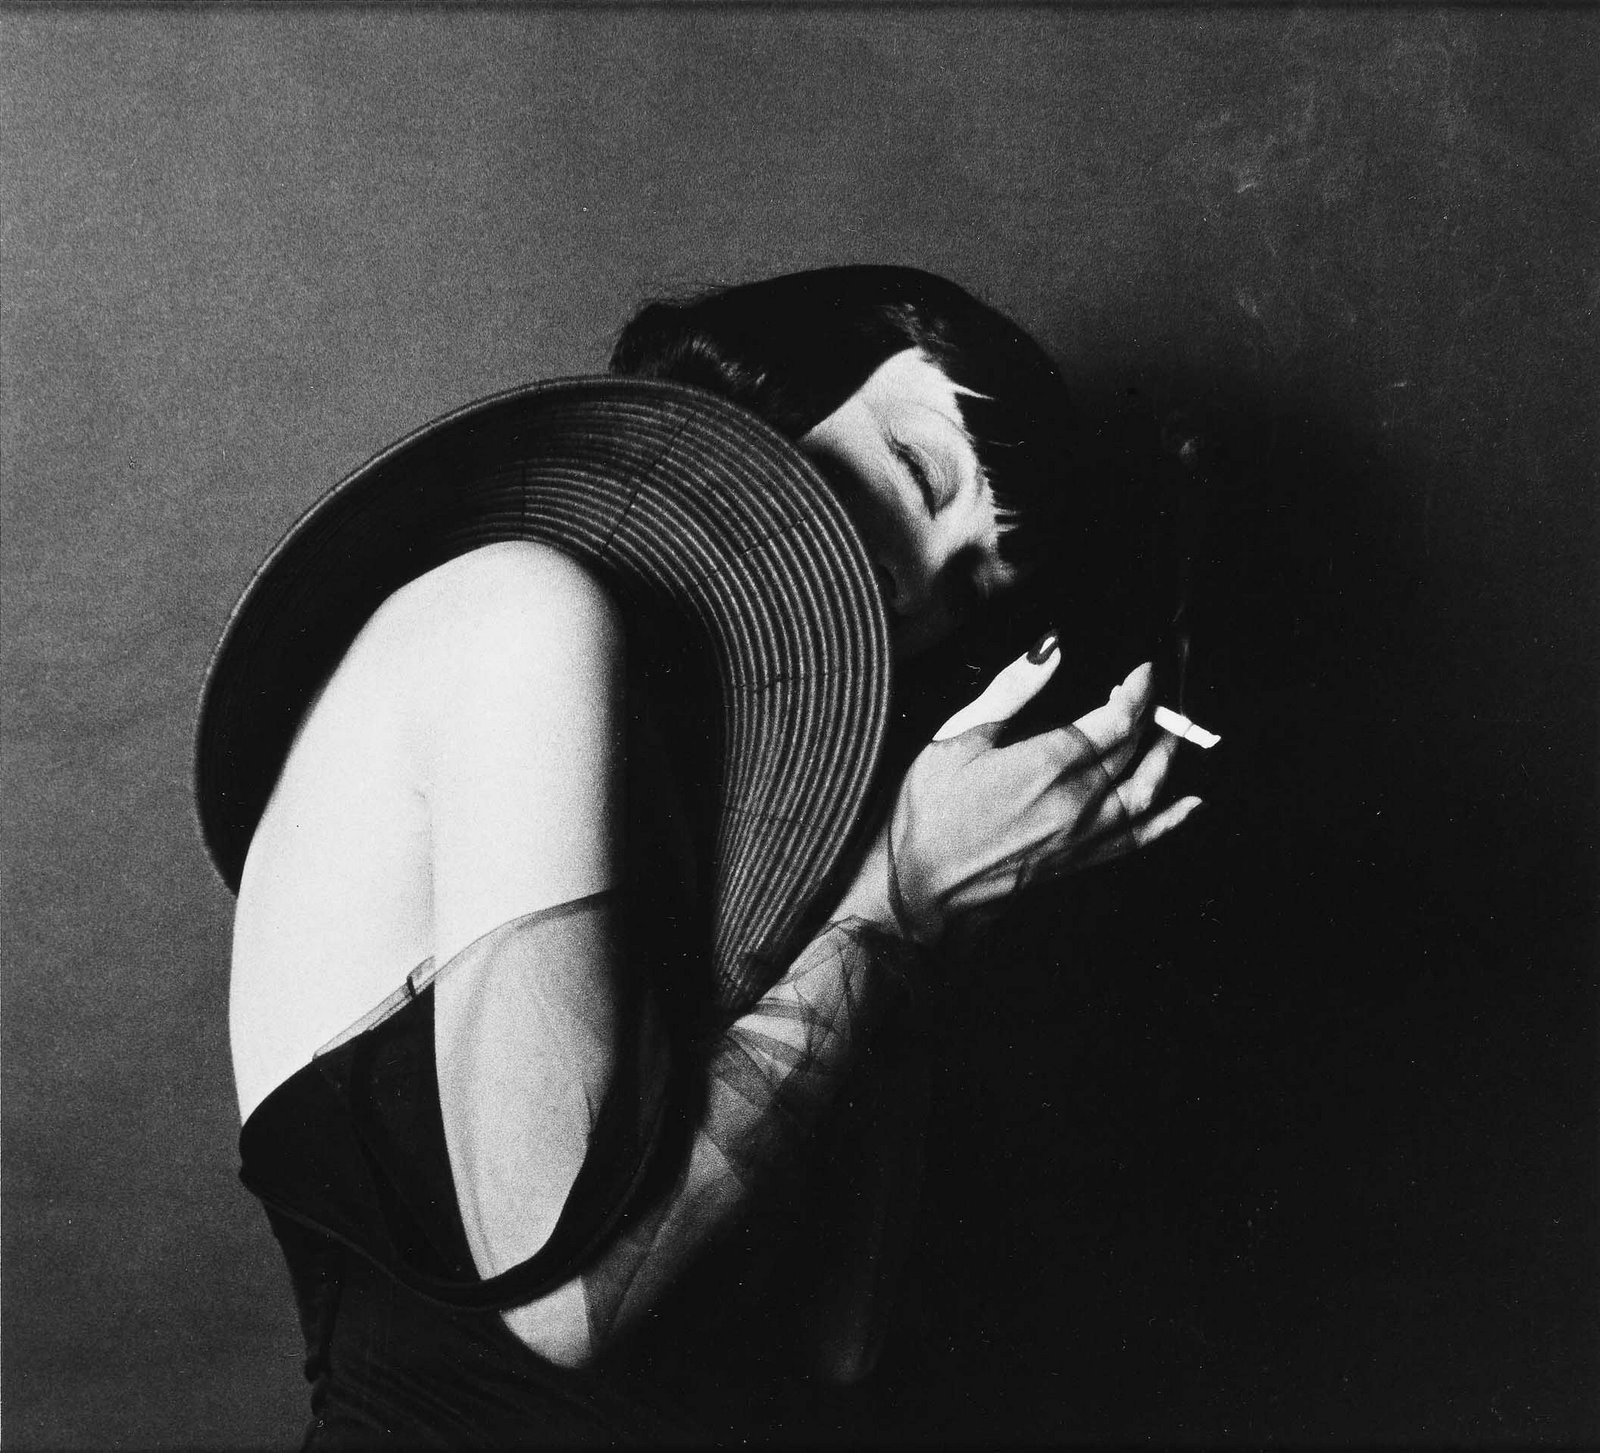 FlashBak Historical Photographer Man Ray